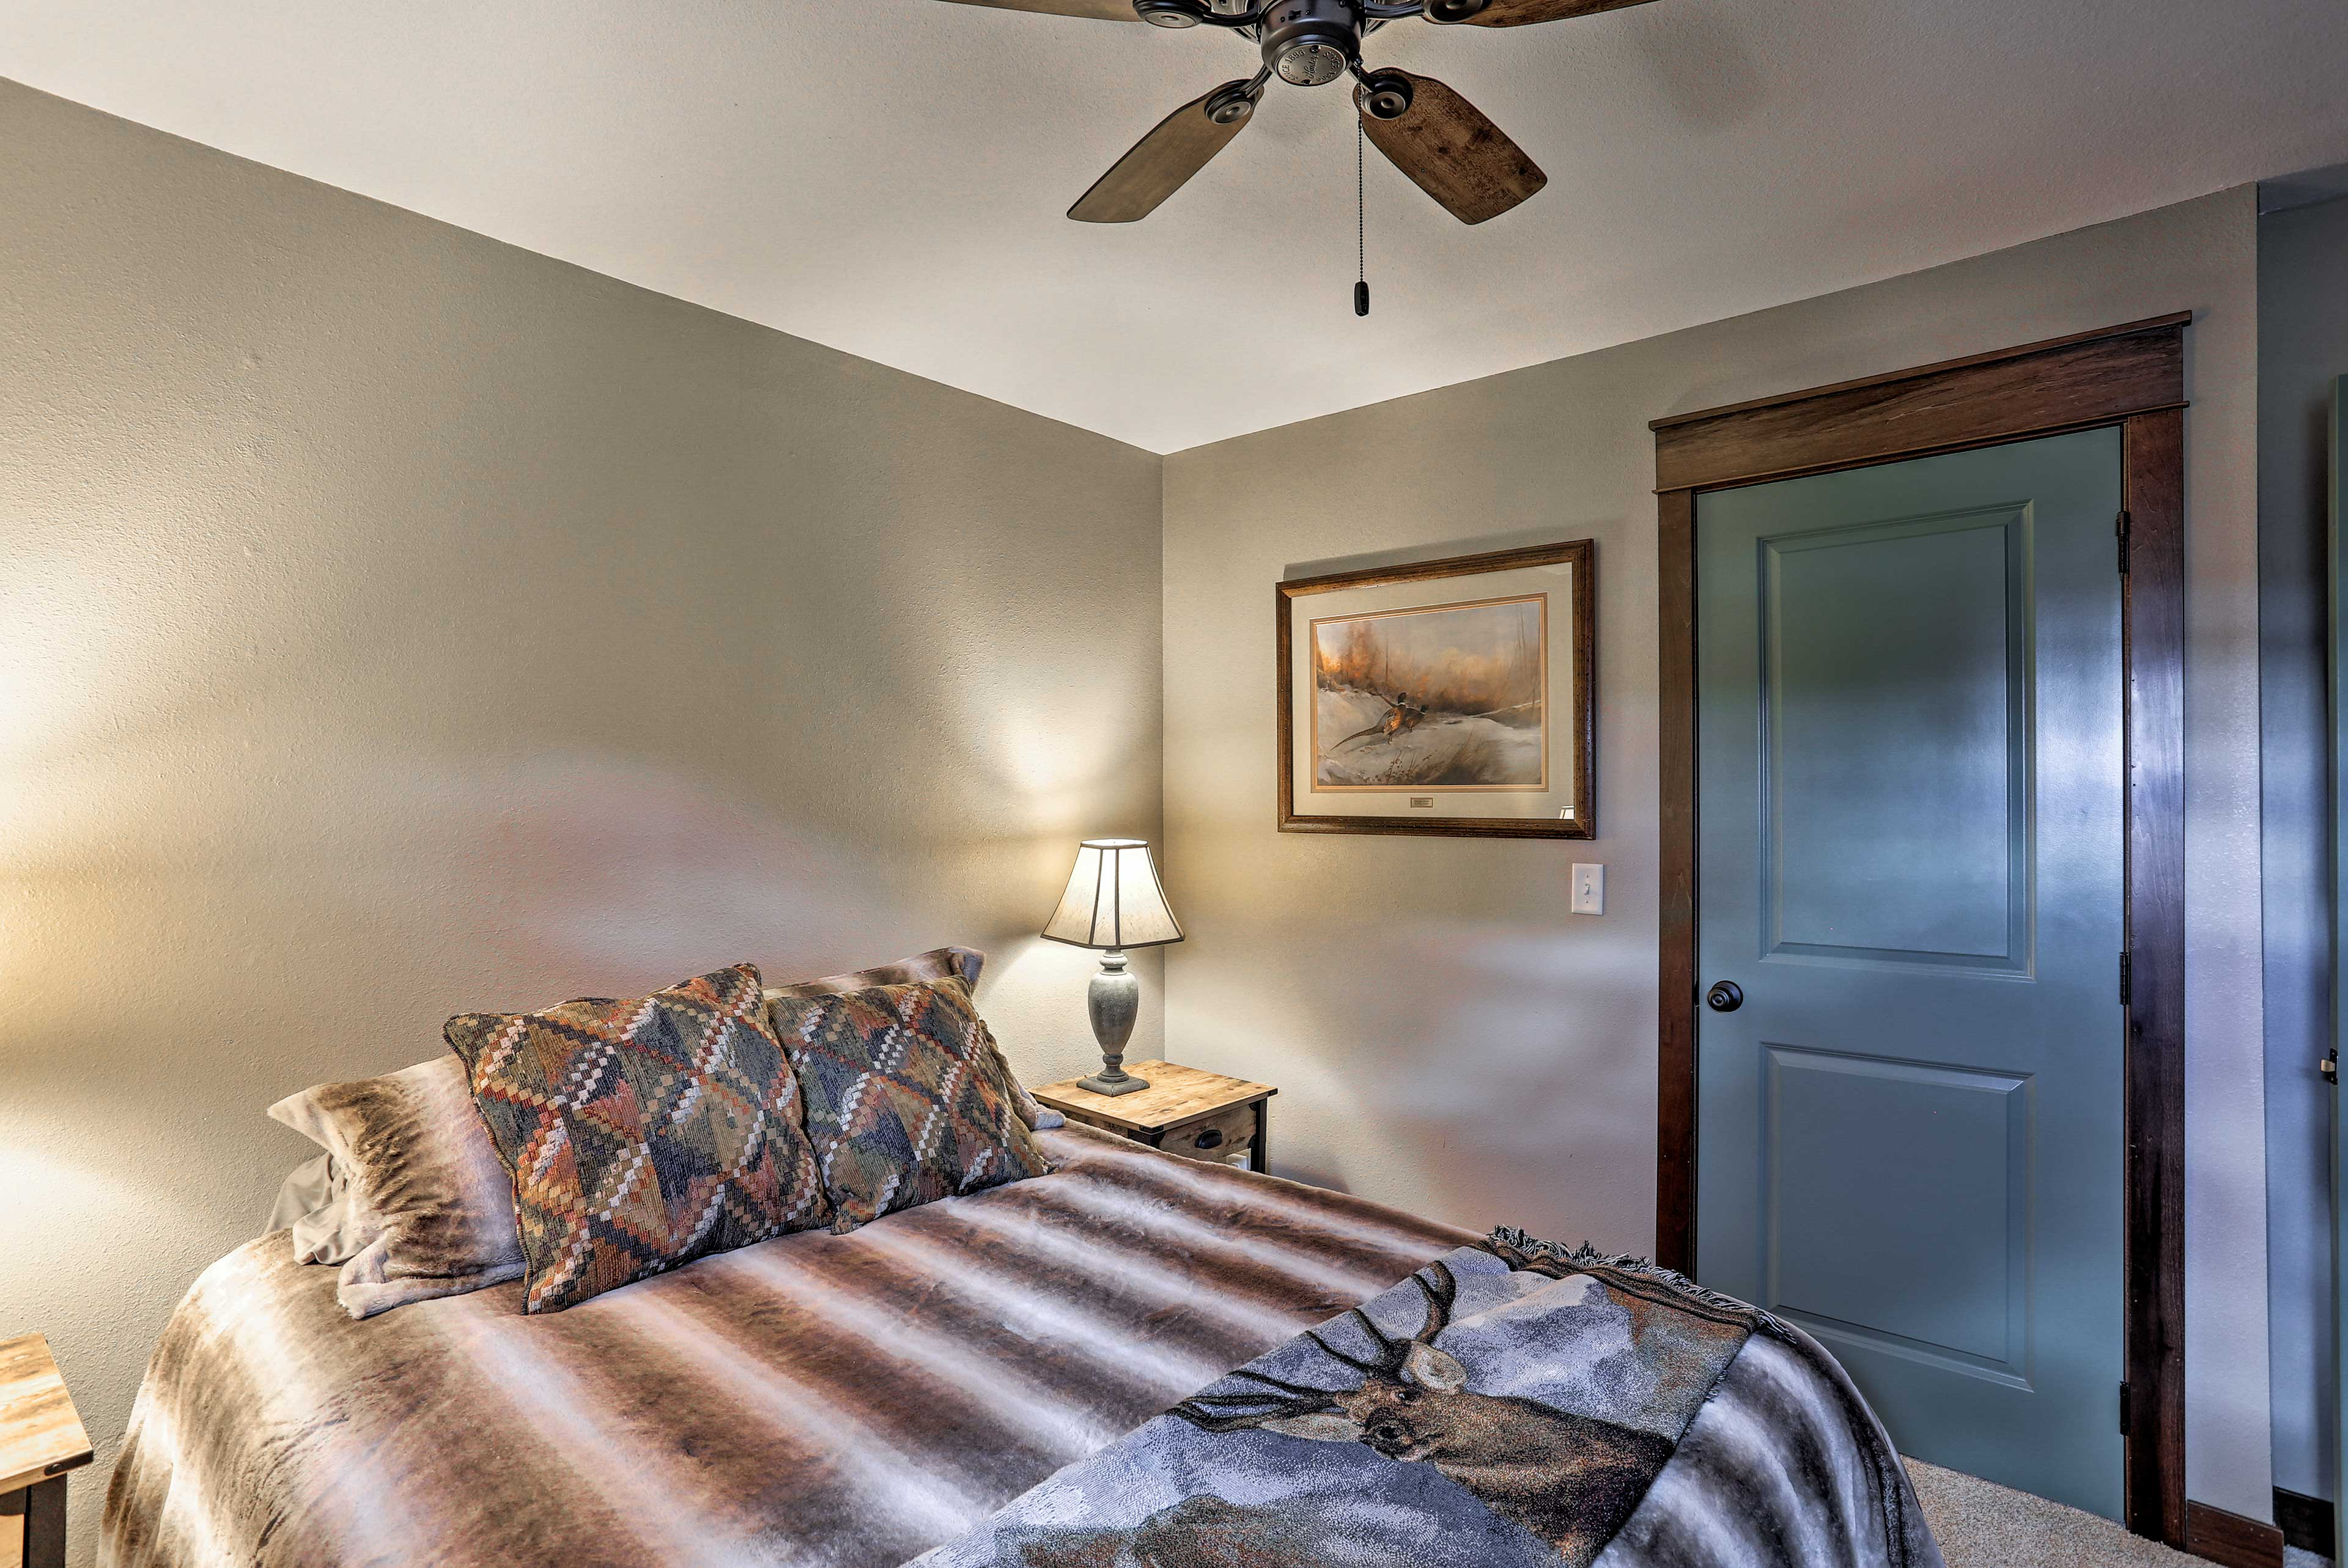 Two more travelers can cozy up in the third bedroom.